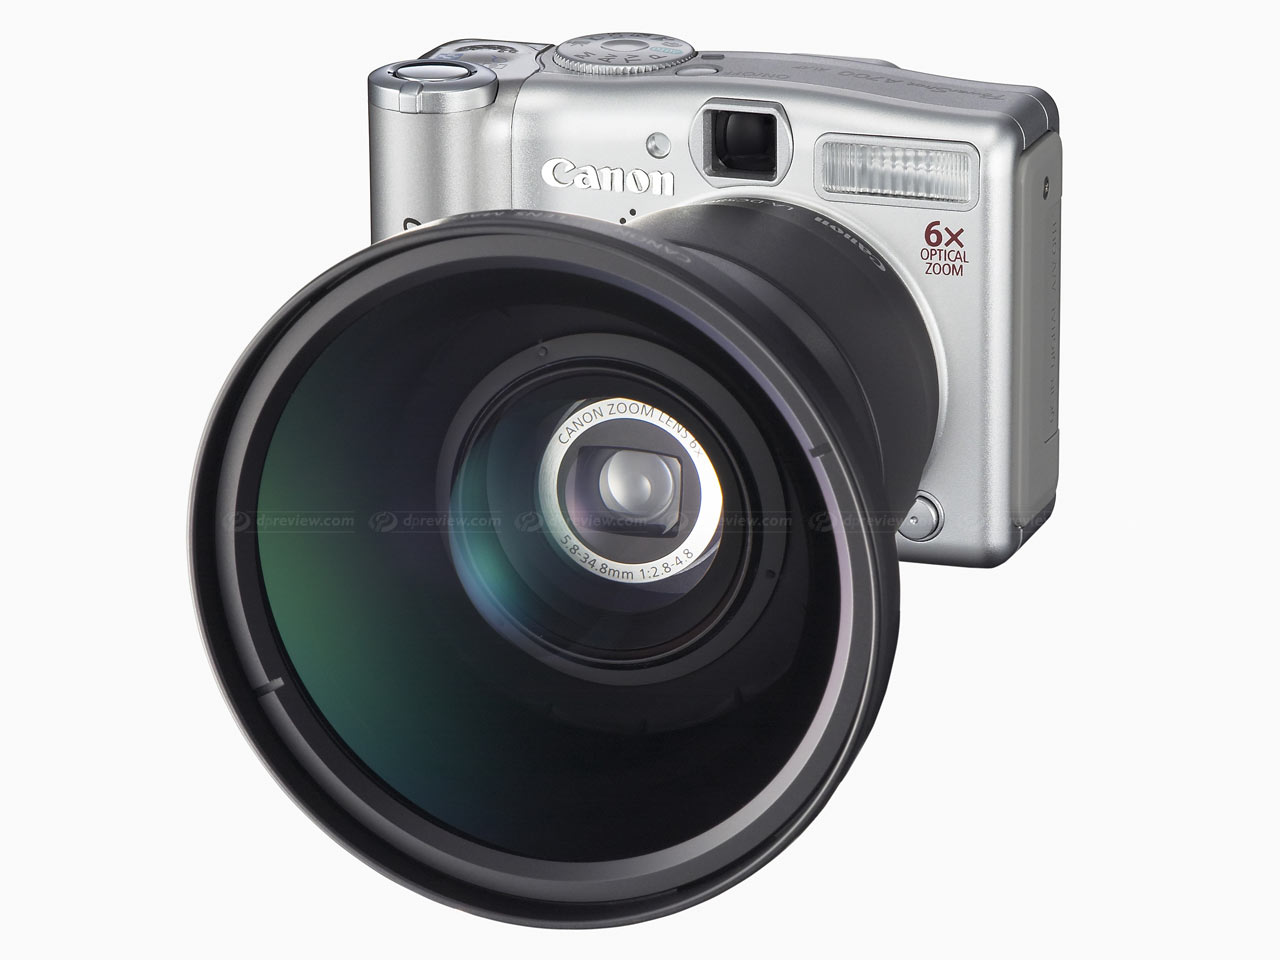 canon powershots a700 and a540 digital photography review rh dpreview com canon sure shot a540 manual canon a520 manual pdf